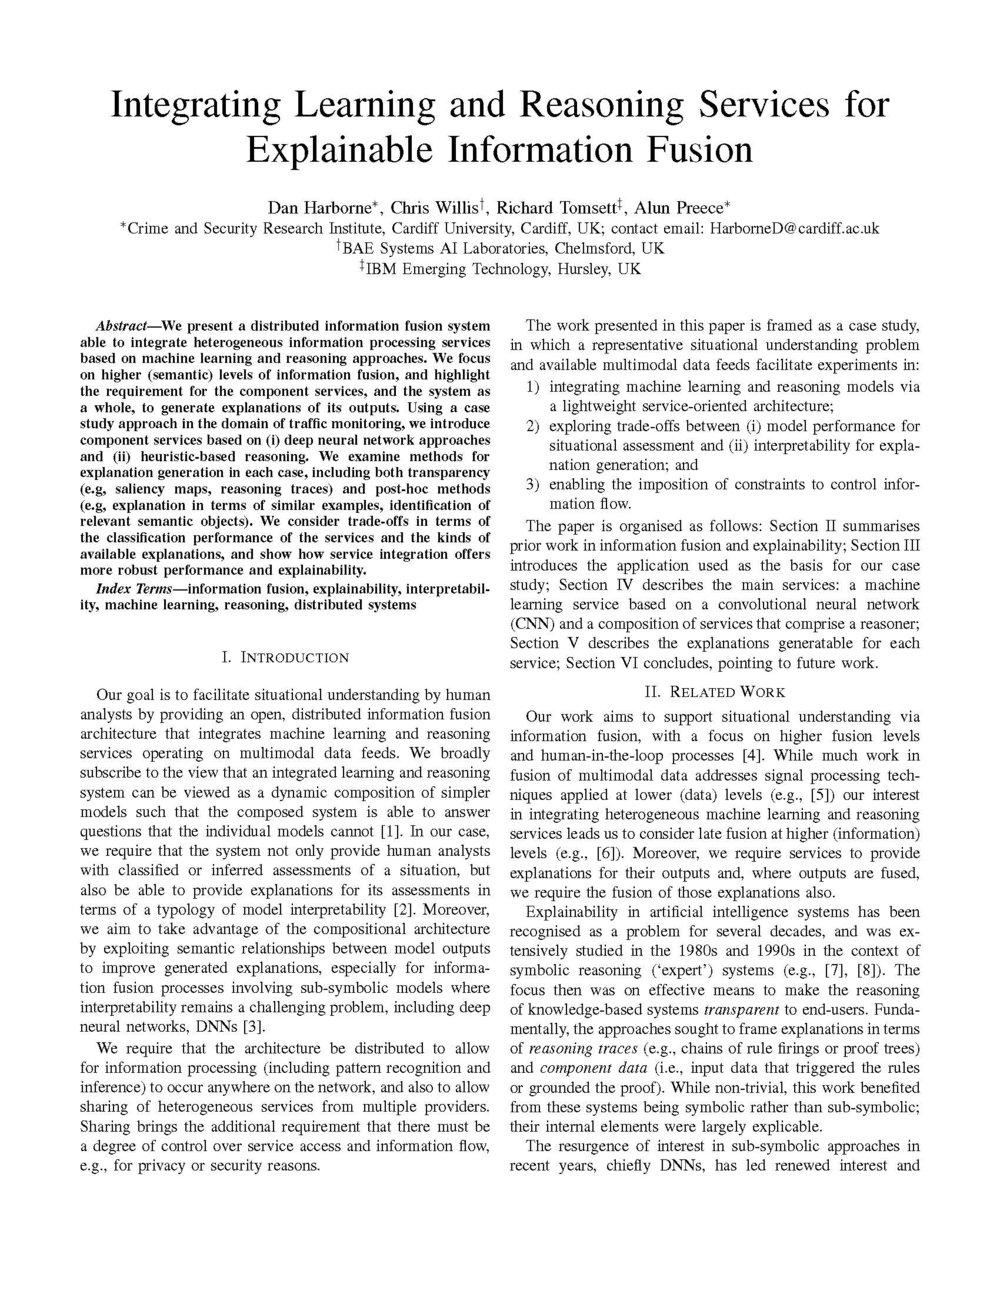 Integrating Learning and Reasoning Services forExplainable Information Fusion -